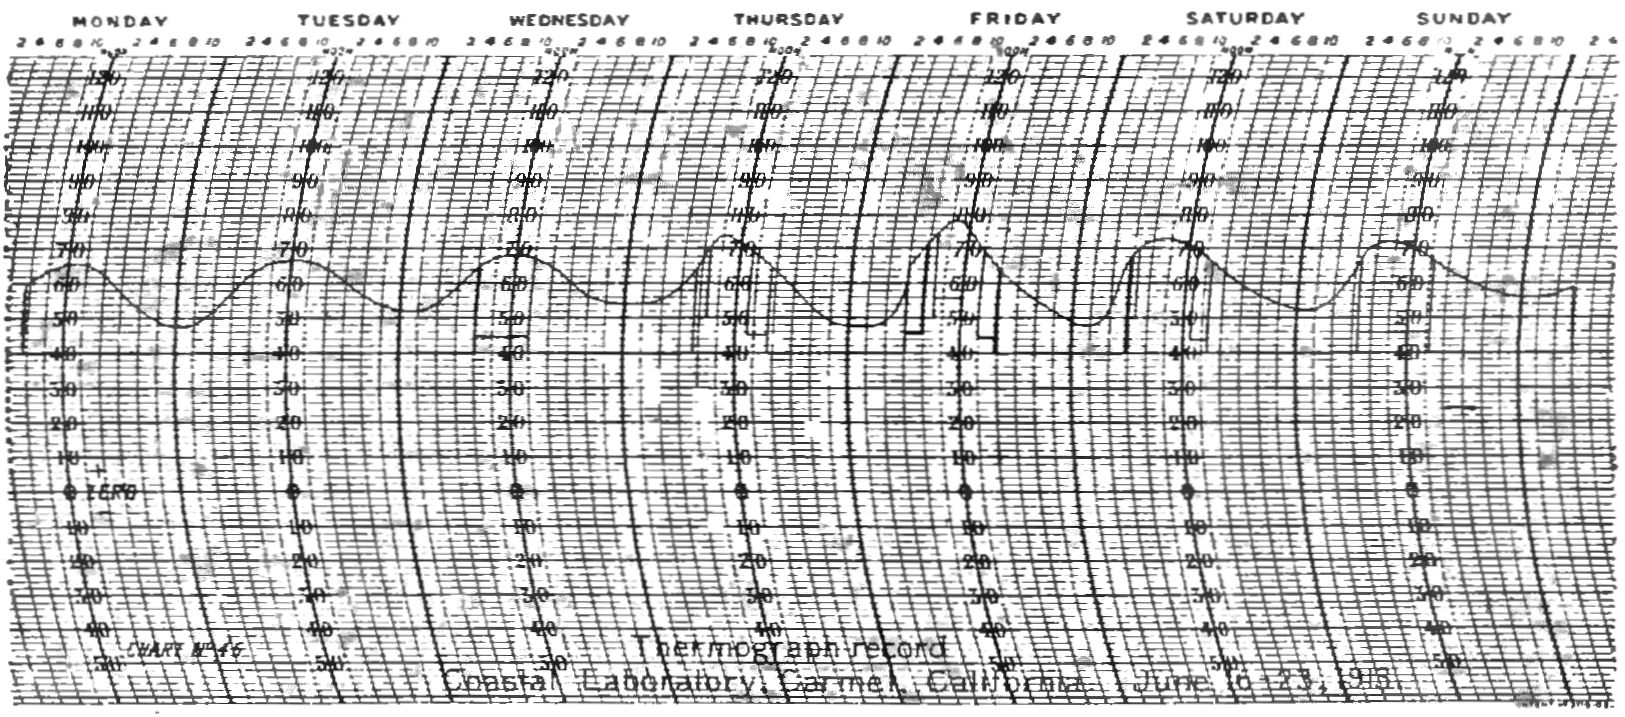 Paper Weight Chart: PSM V84 D433 Thermograph chart.jpg - Wikimedia Commons,Chart